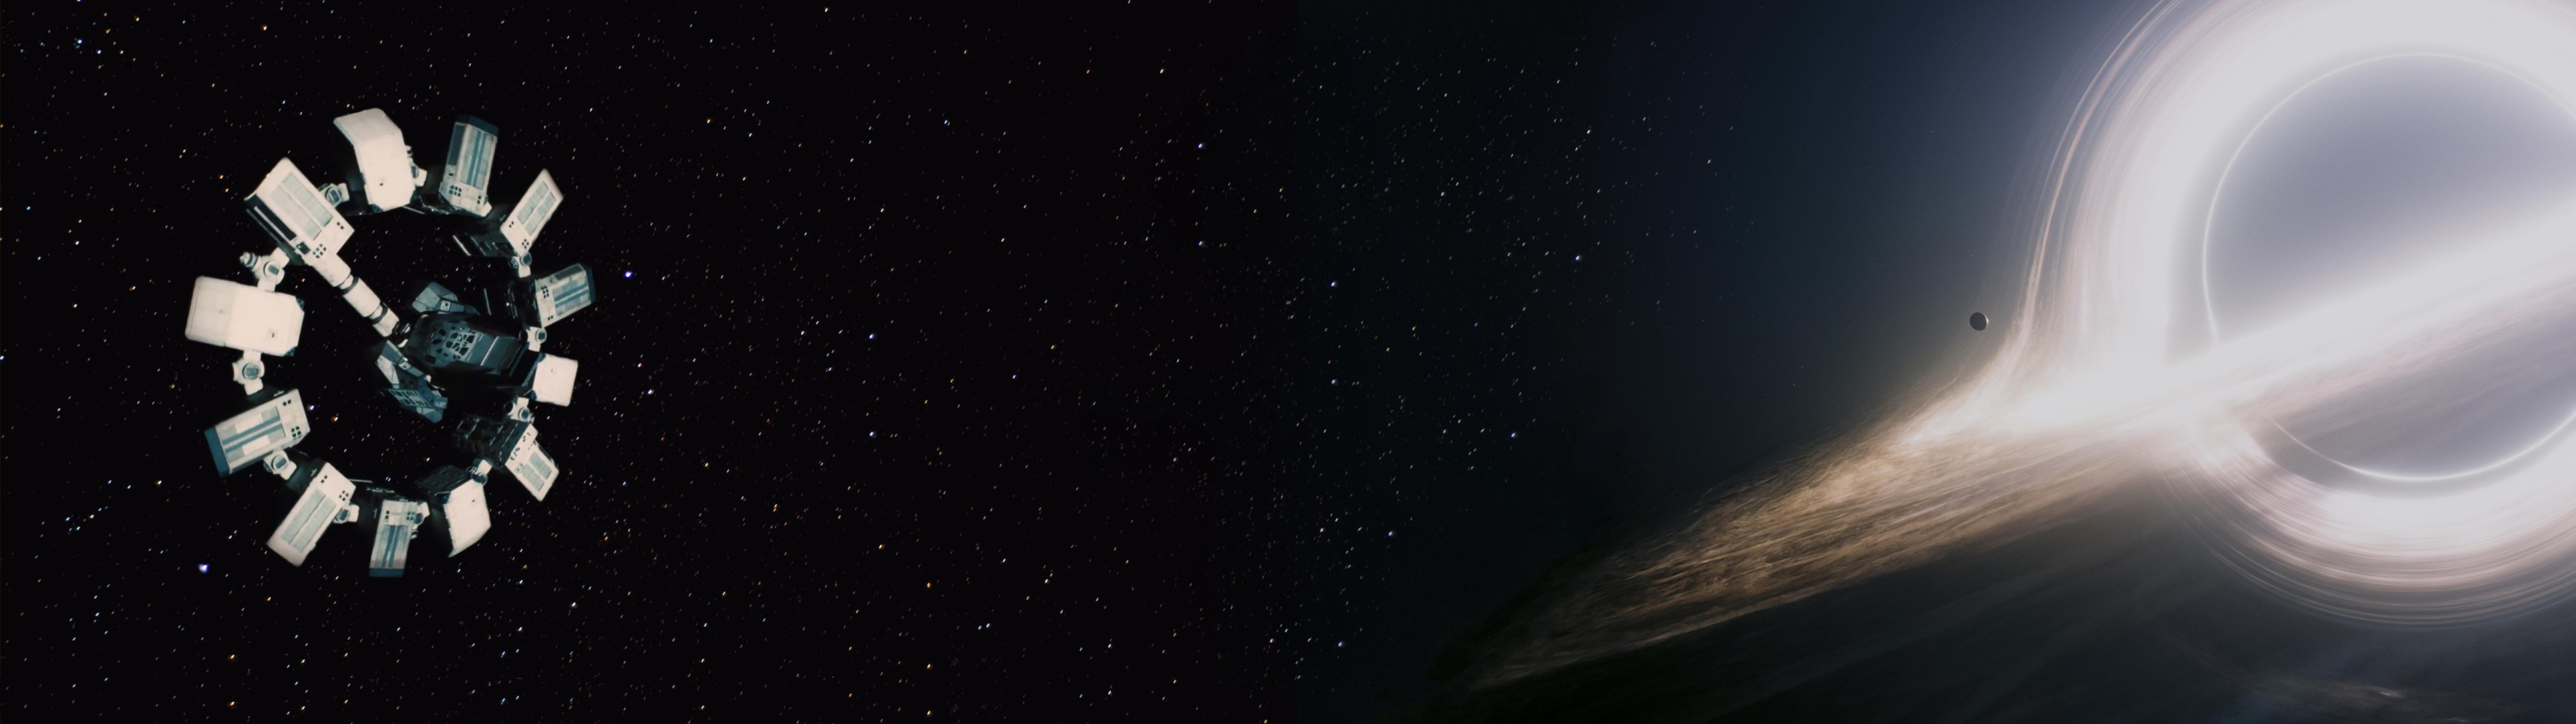 3840x1080  Interstellar HD Wallpapers THIS Wallpaper. 8 · Download · Res:  3840x2160 ...